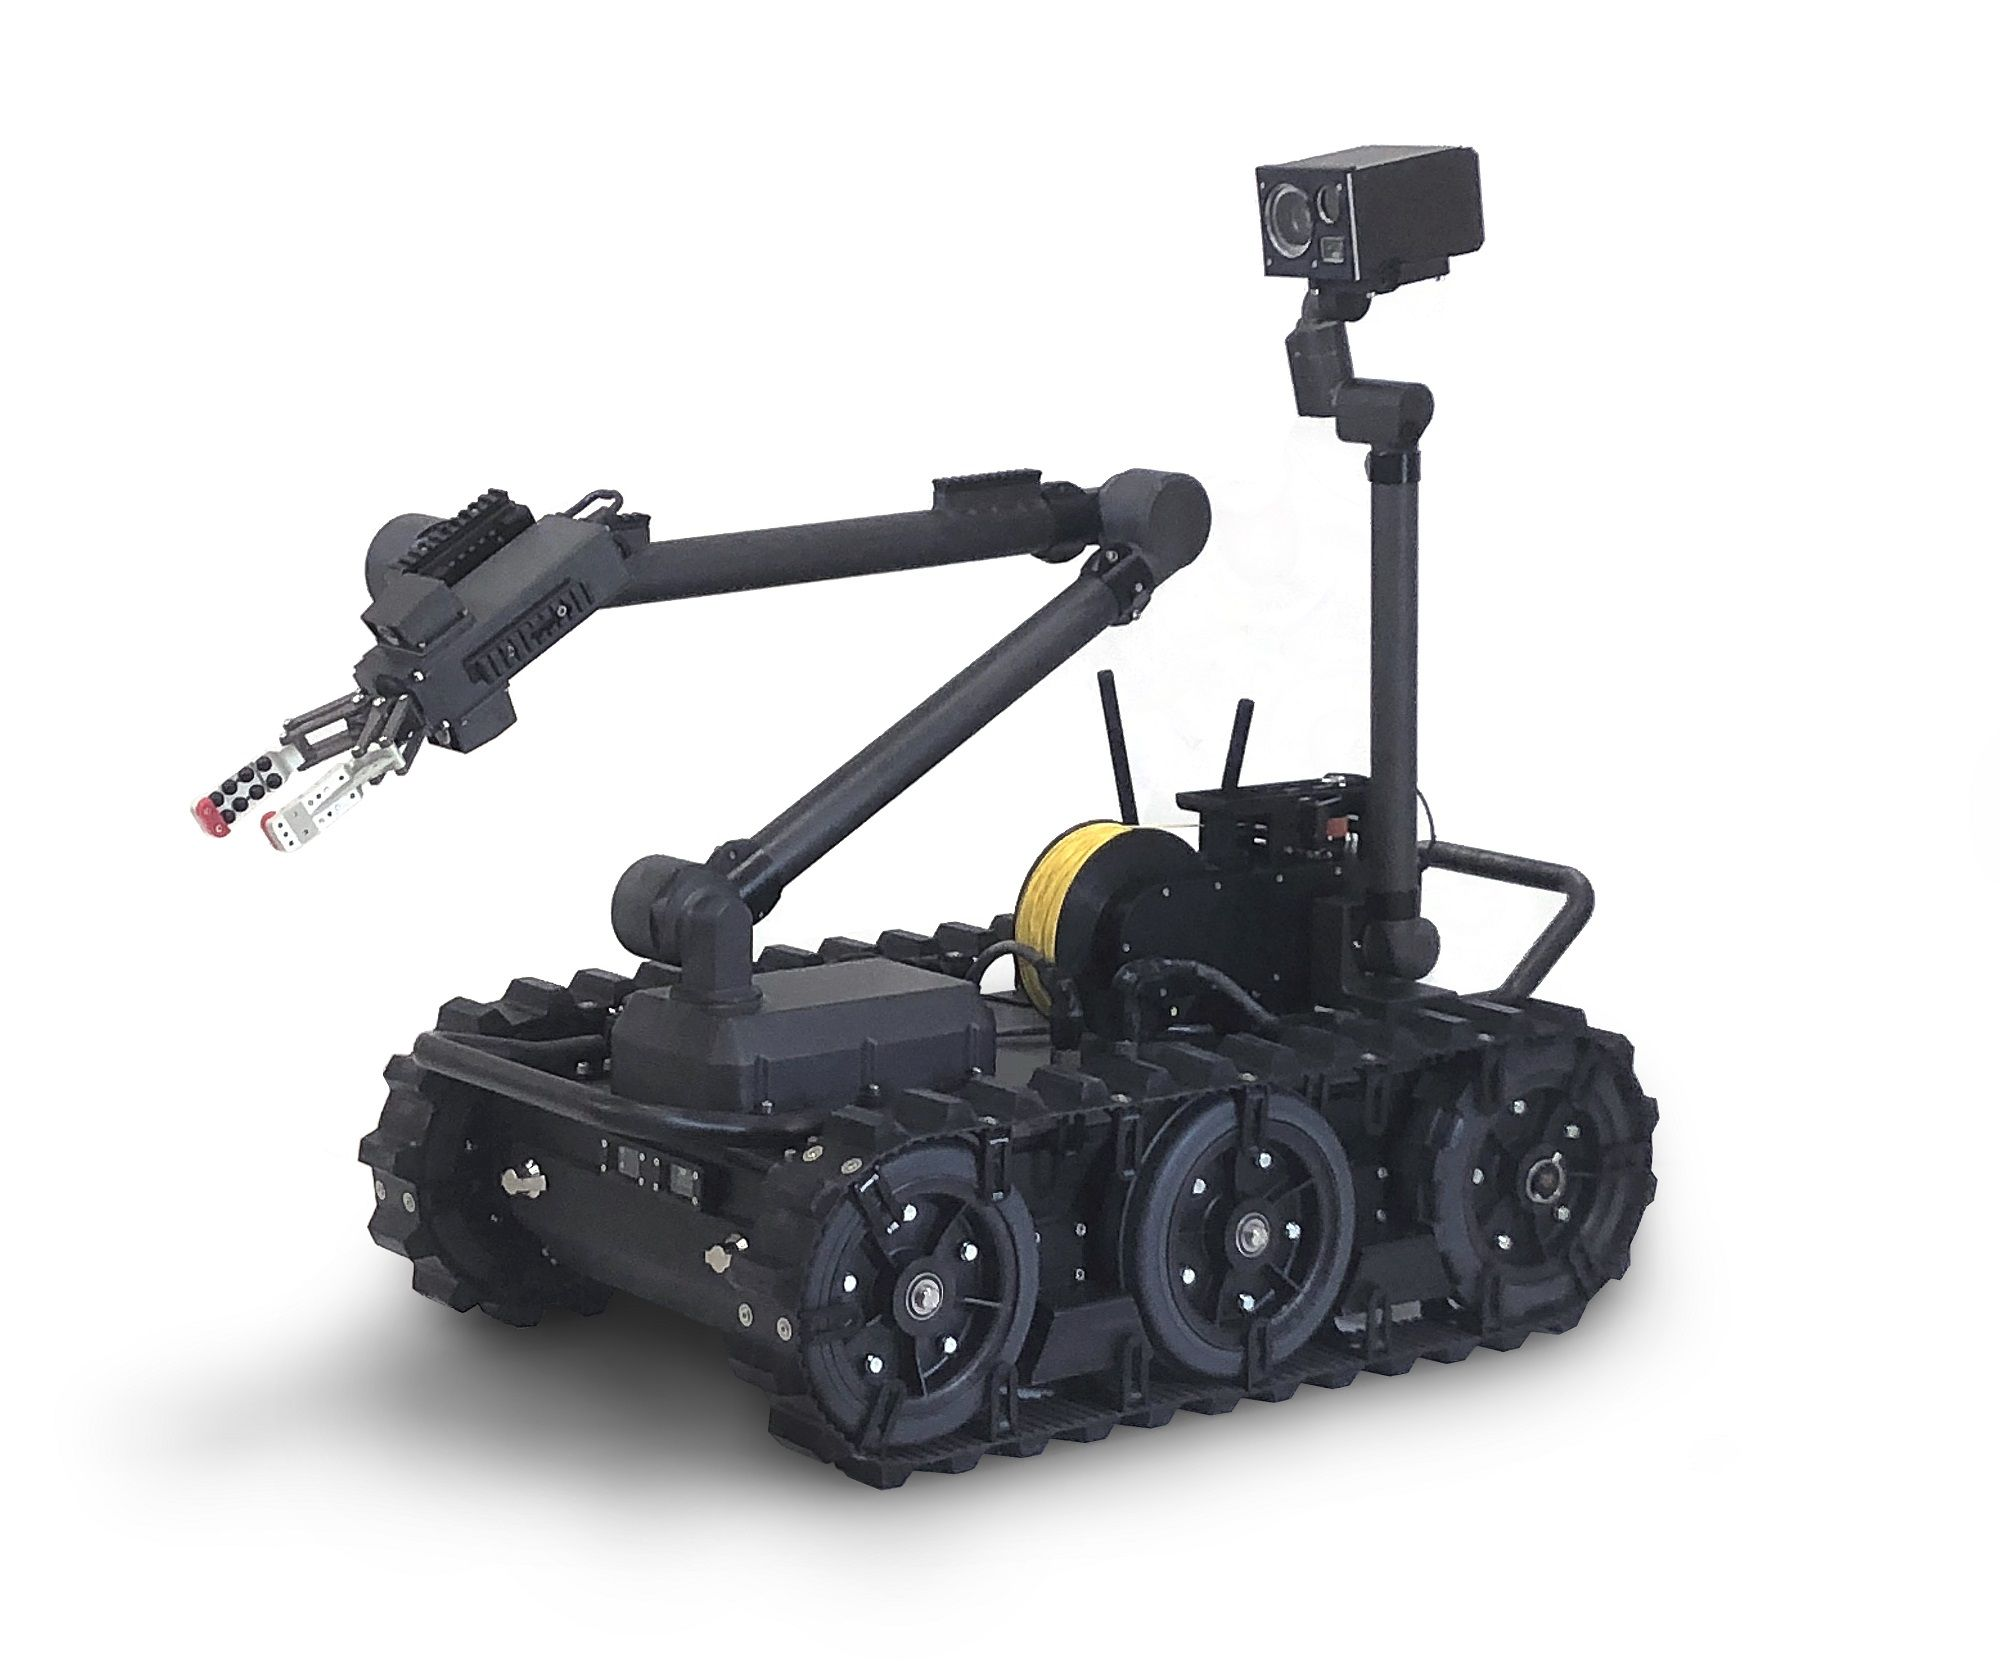 """Endeavor Robotics, nw FLIR Systems) was awarded a contract in September 2017 for the Man Transportable Robotic System Increment II (MTRS Inc II) Programme, with the UGV being, """"a 164-lbs [74kg] robot capable of doing EOD operations, CBRN defence missions and it will have applications for route clearance and for engineers."""" (Photo: US Army/FLIR)"""